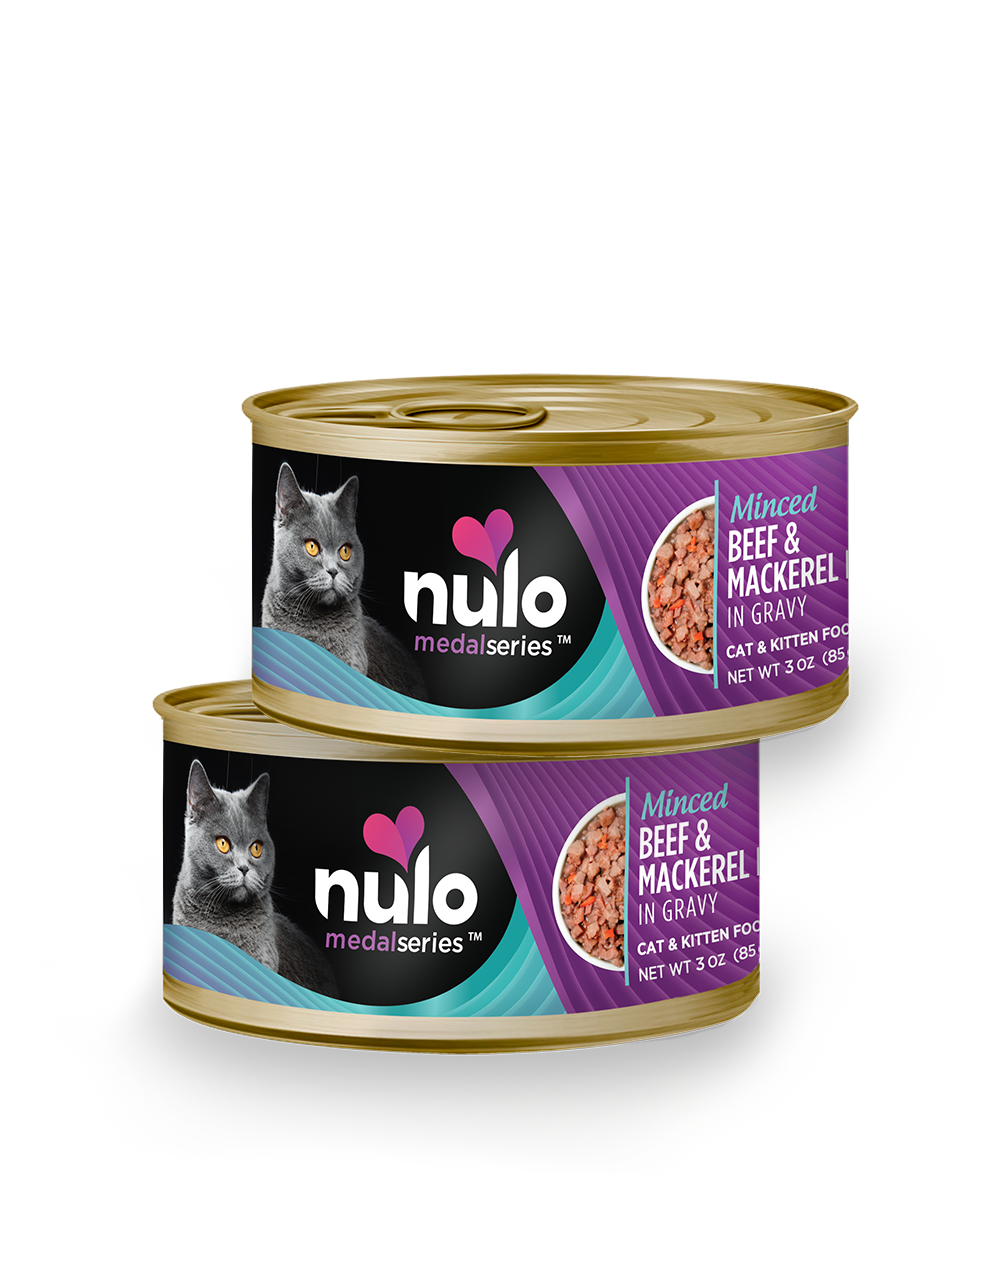 Nulo medalseries 3oz cat cans Beef&Mackerel